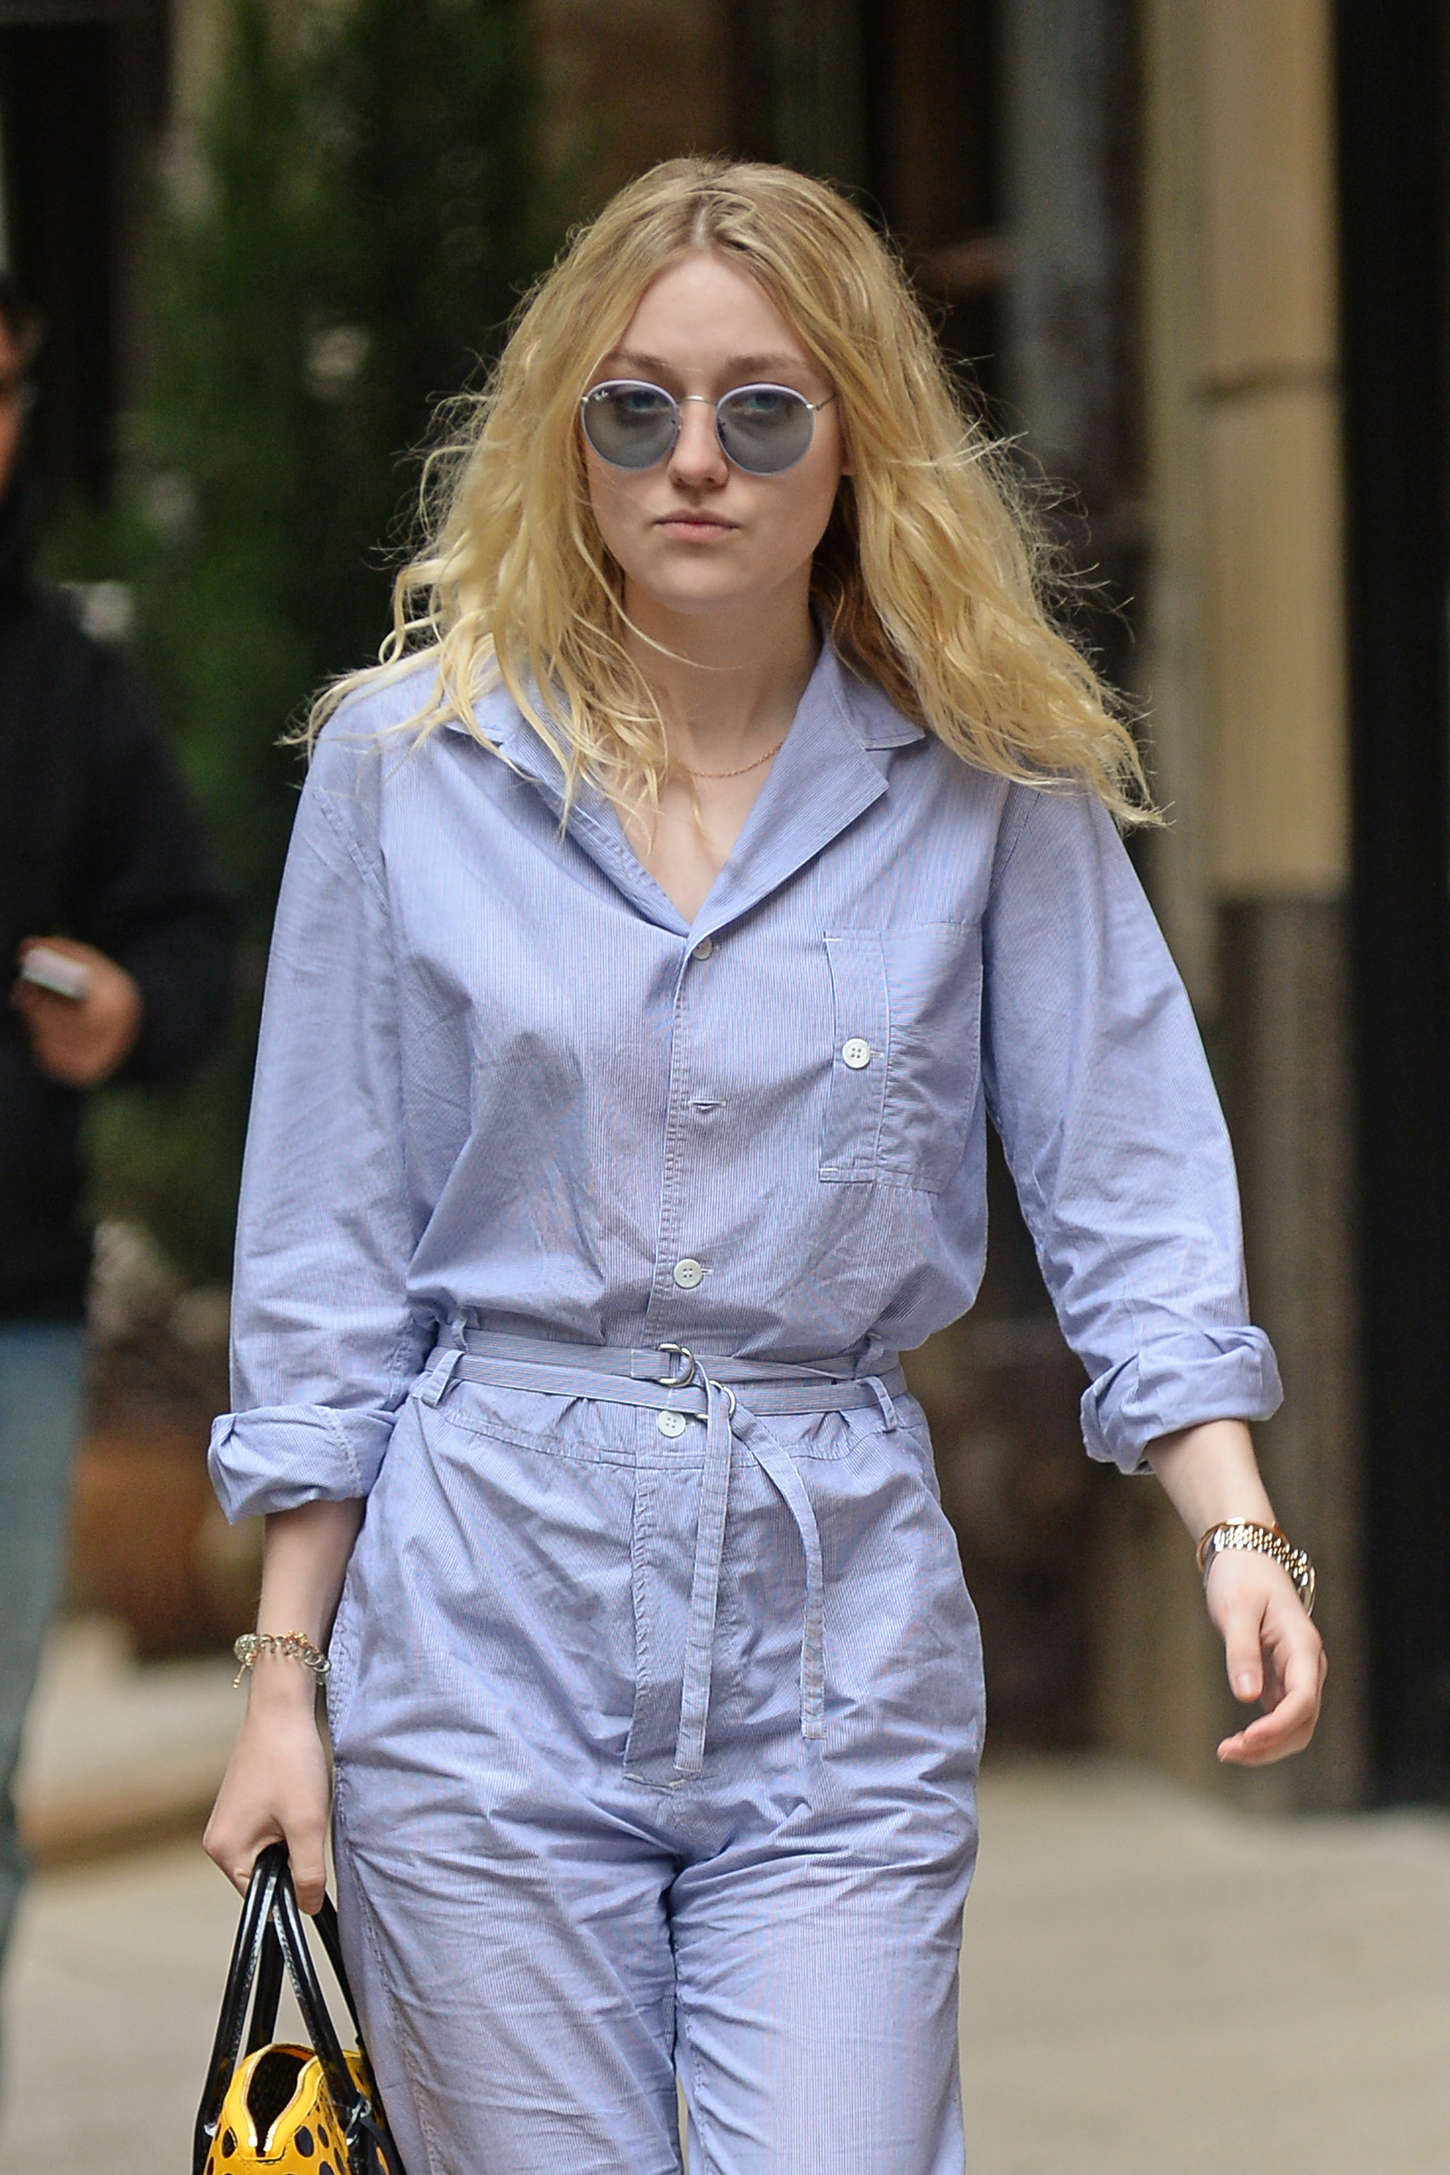 Dakota Fanning in Jumpsuit Out in NYC